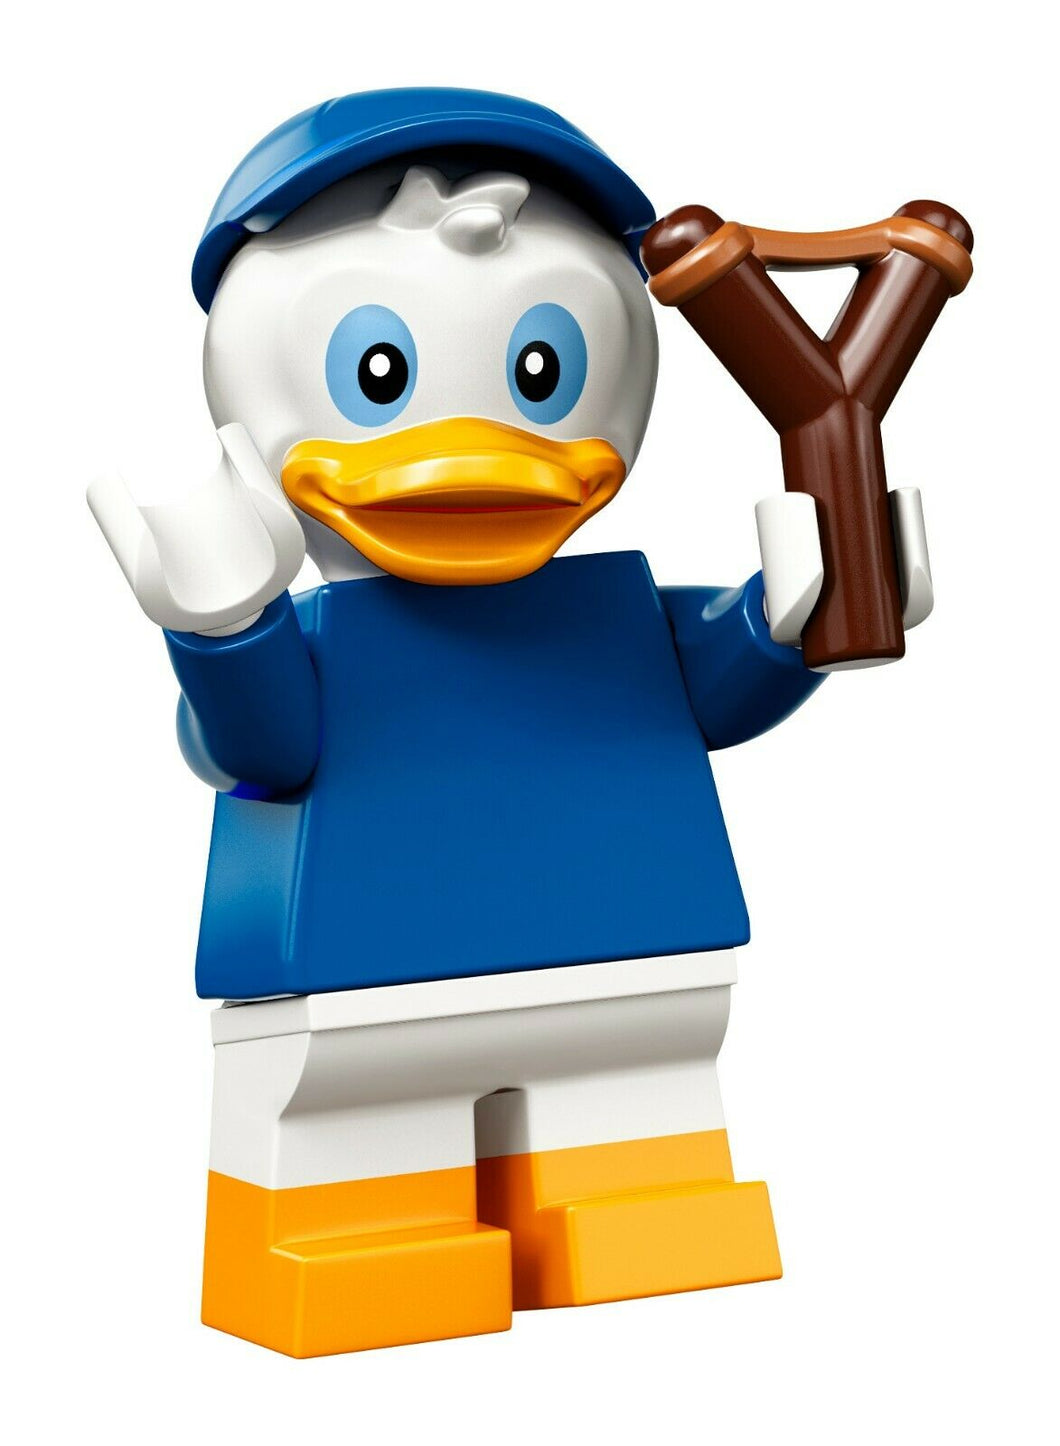 LEGO 71024 Minifigures Disney Series 2 - Dewey (DuckTales)